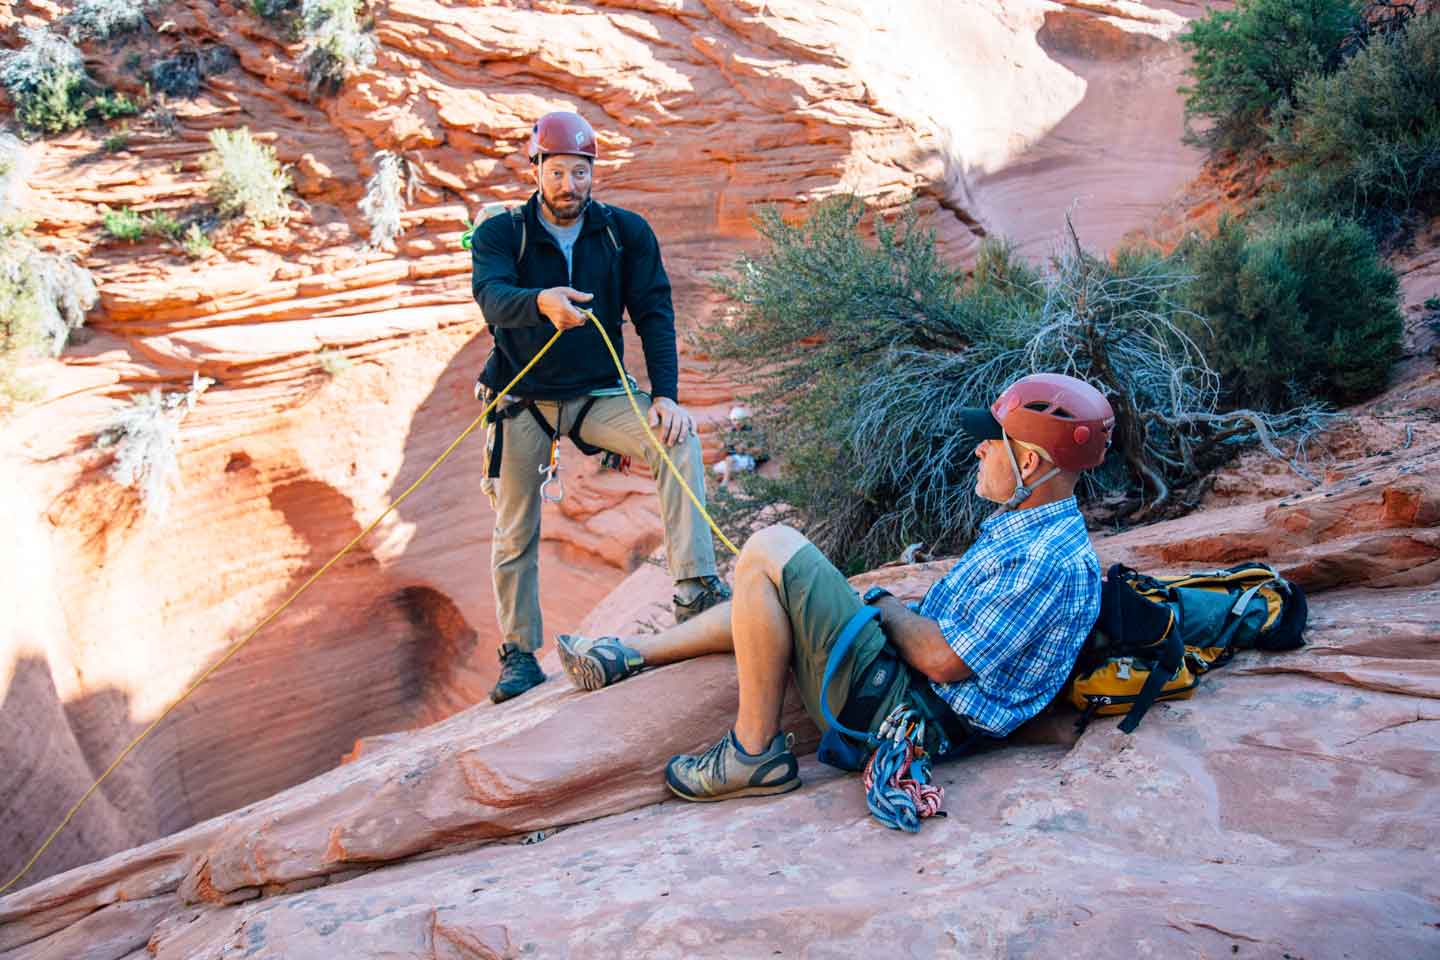 A guide demonstrating how to use ropes to repel into a slot canyon